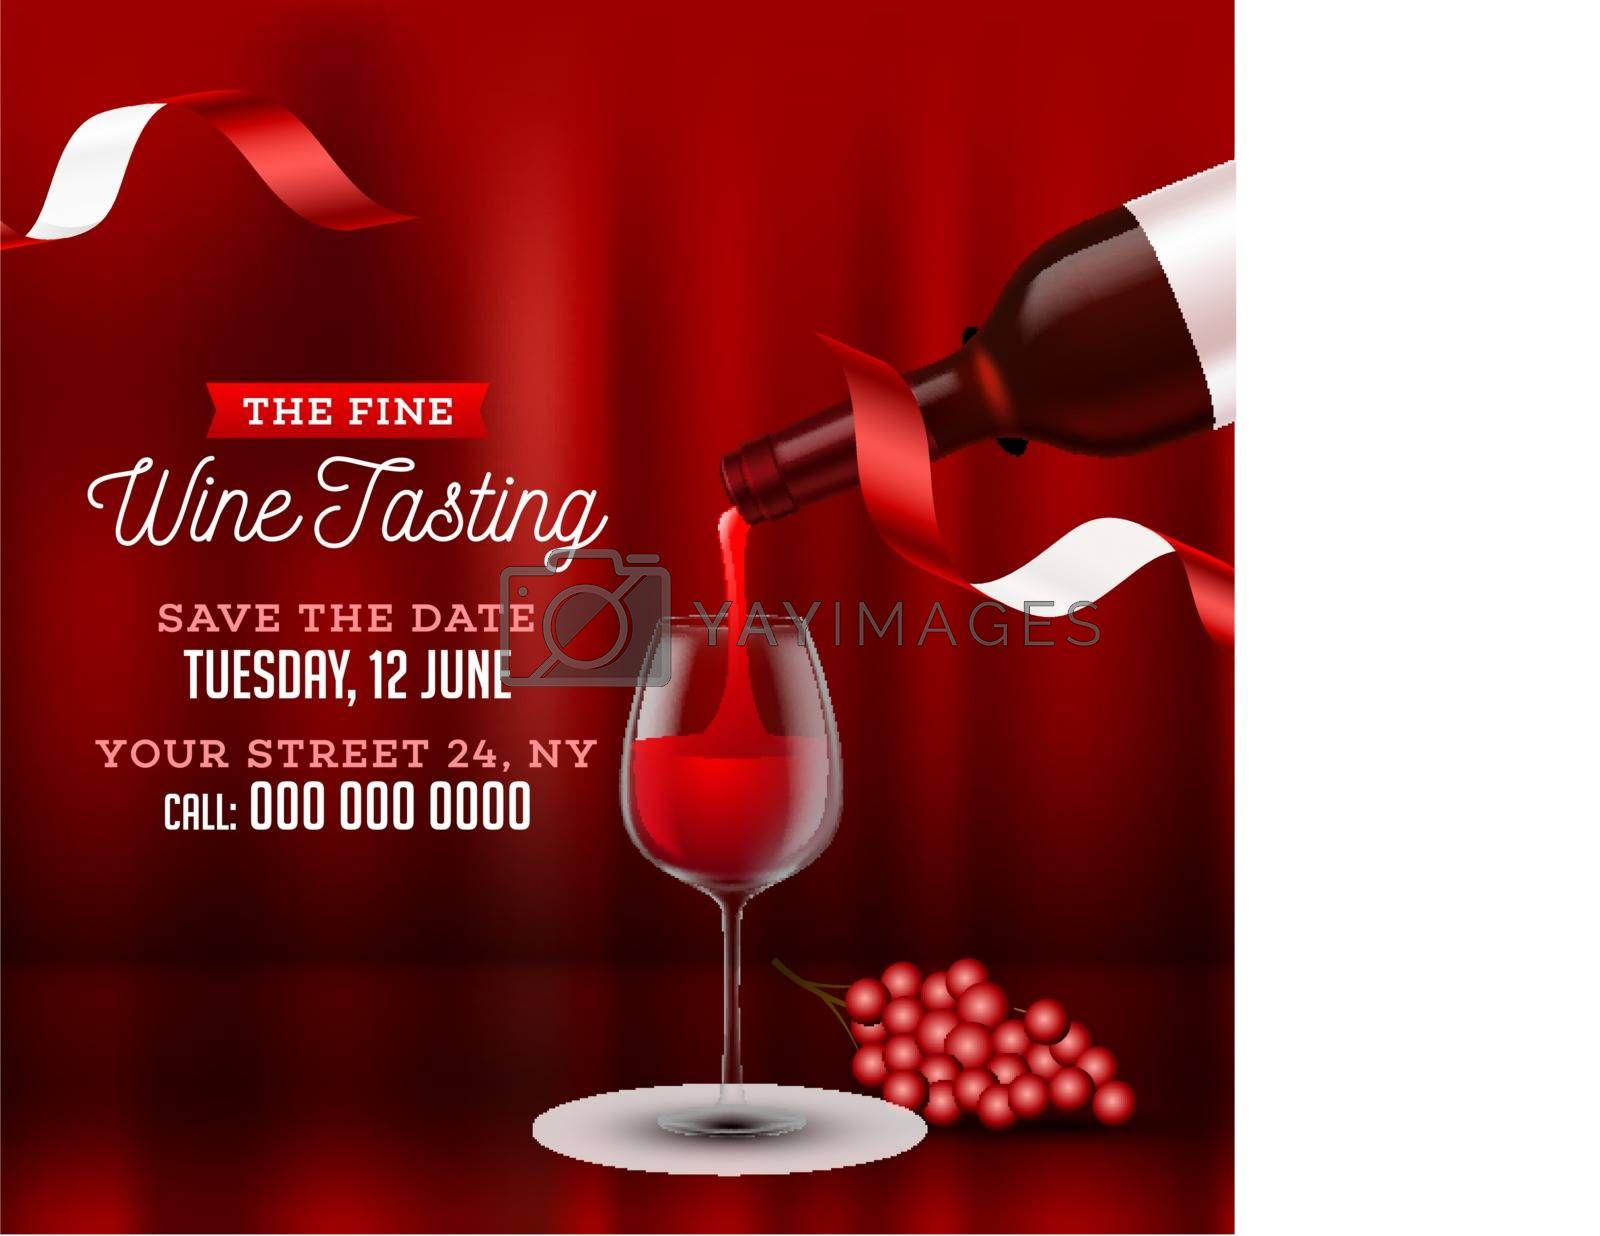 Glossy red background with wine in glass for Wine Tasting party celebration banner or poster design, date, time and venue detail.